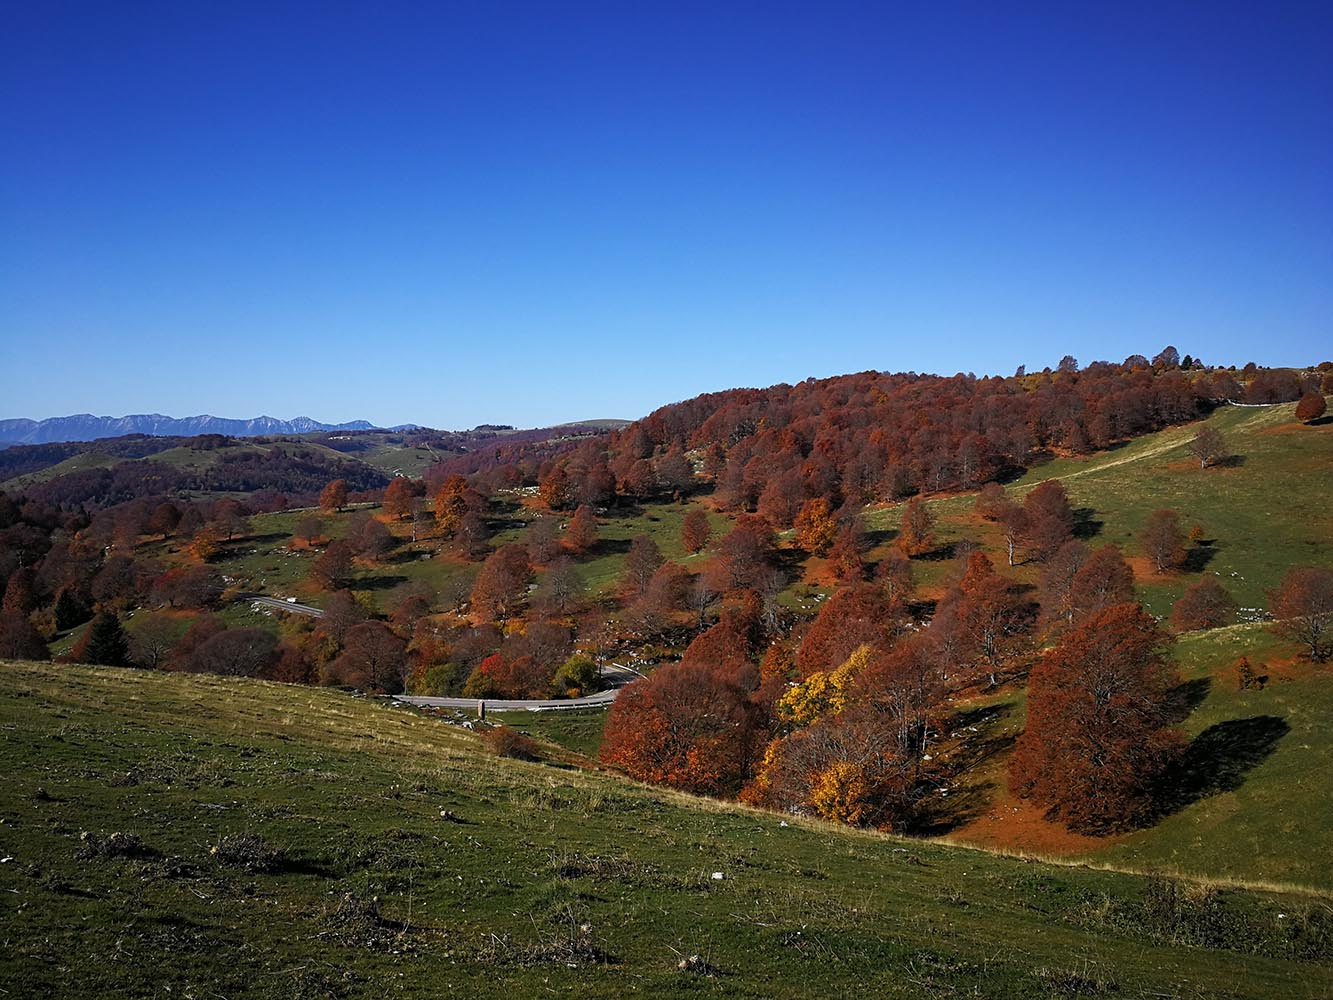 lessinia autunno